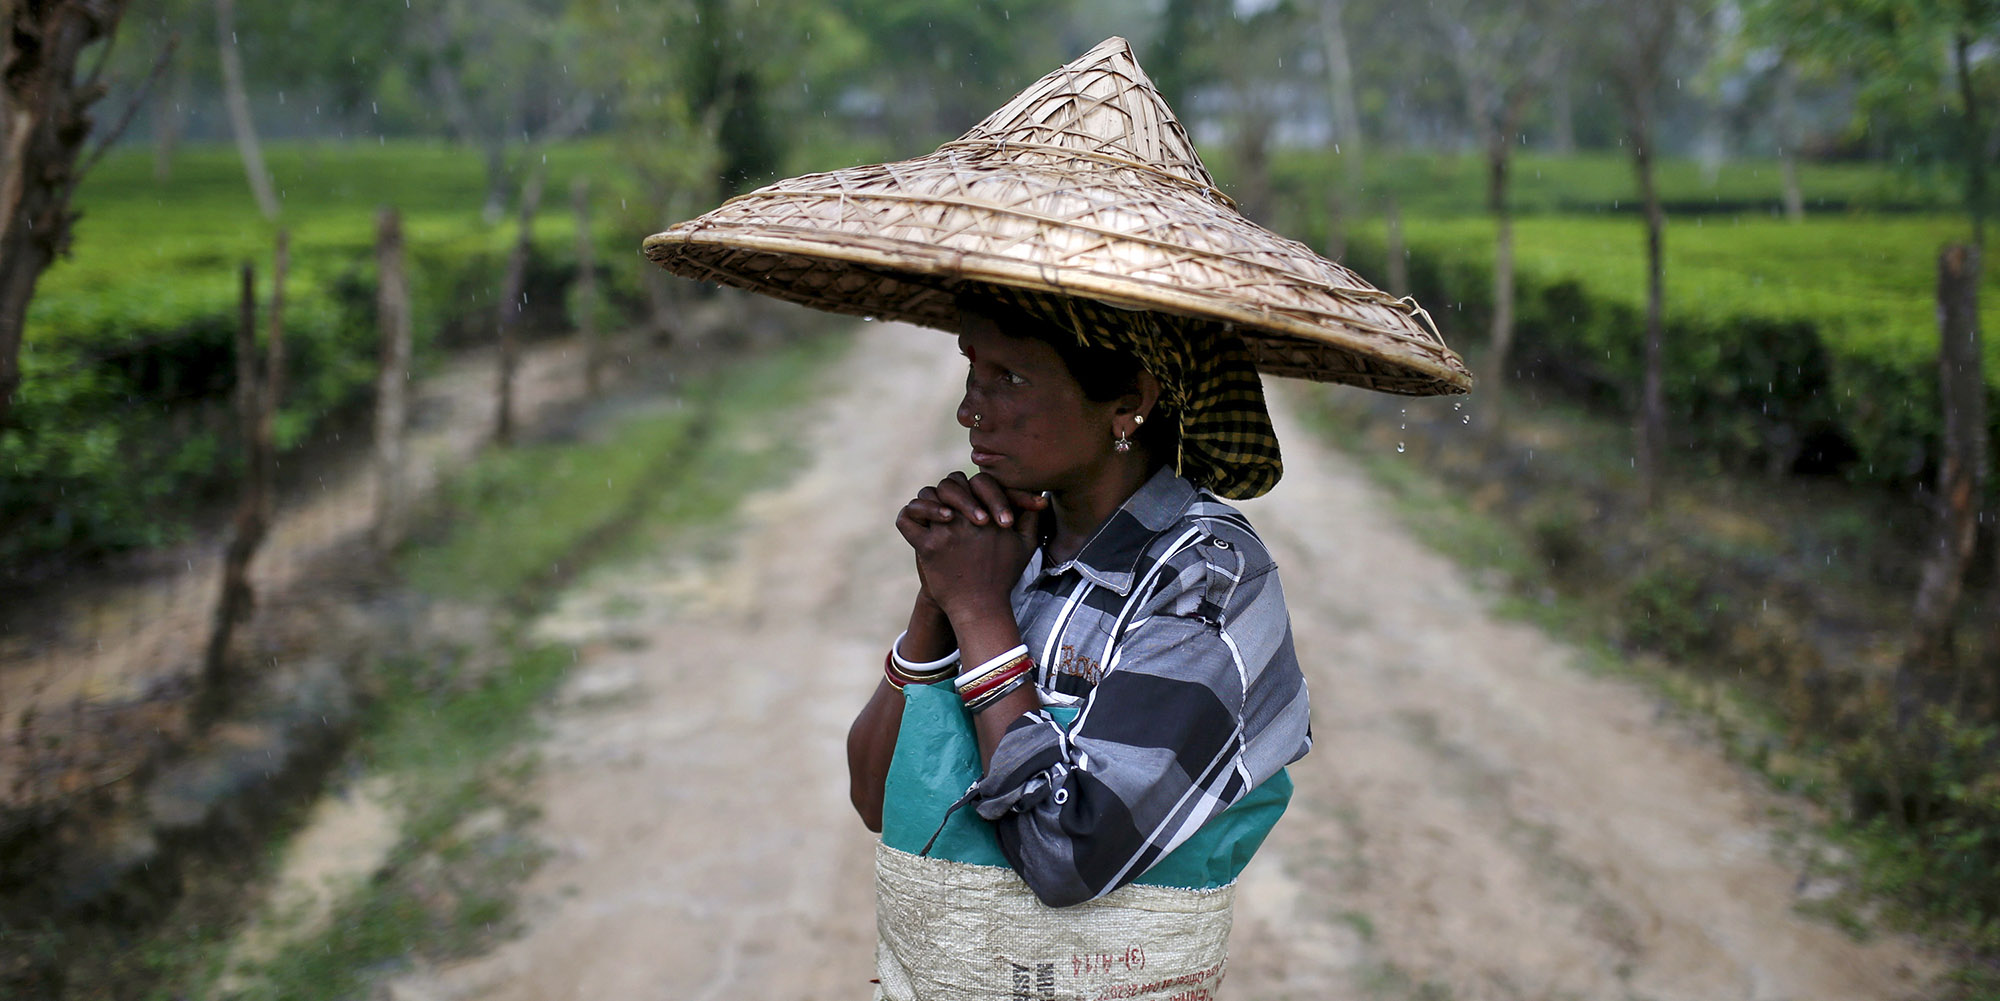 A tea garden worker wearing a jappi hat made out of bamboo and palm leaves waits for the rain to stop to resume her work inside Aideobarie Tea Estate in Jorhat in Assam, India, April 21, 2015. Unrest is brewing among Assam's so-called Tea Tribes as changing weather patterns upset the economics of the industry. Scientists say climate change is to blame for uneven rainfall that is cutting yields and lifting costs for tea firms.